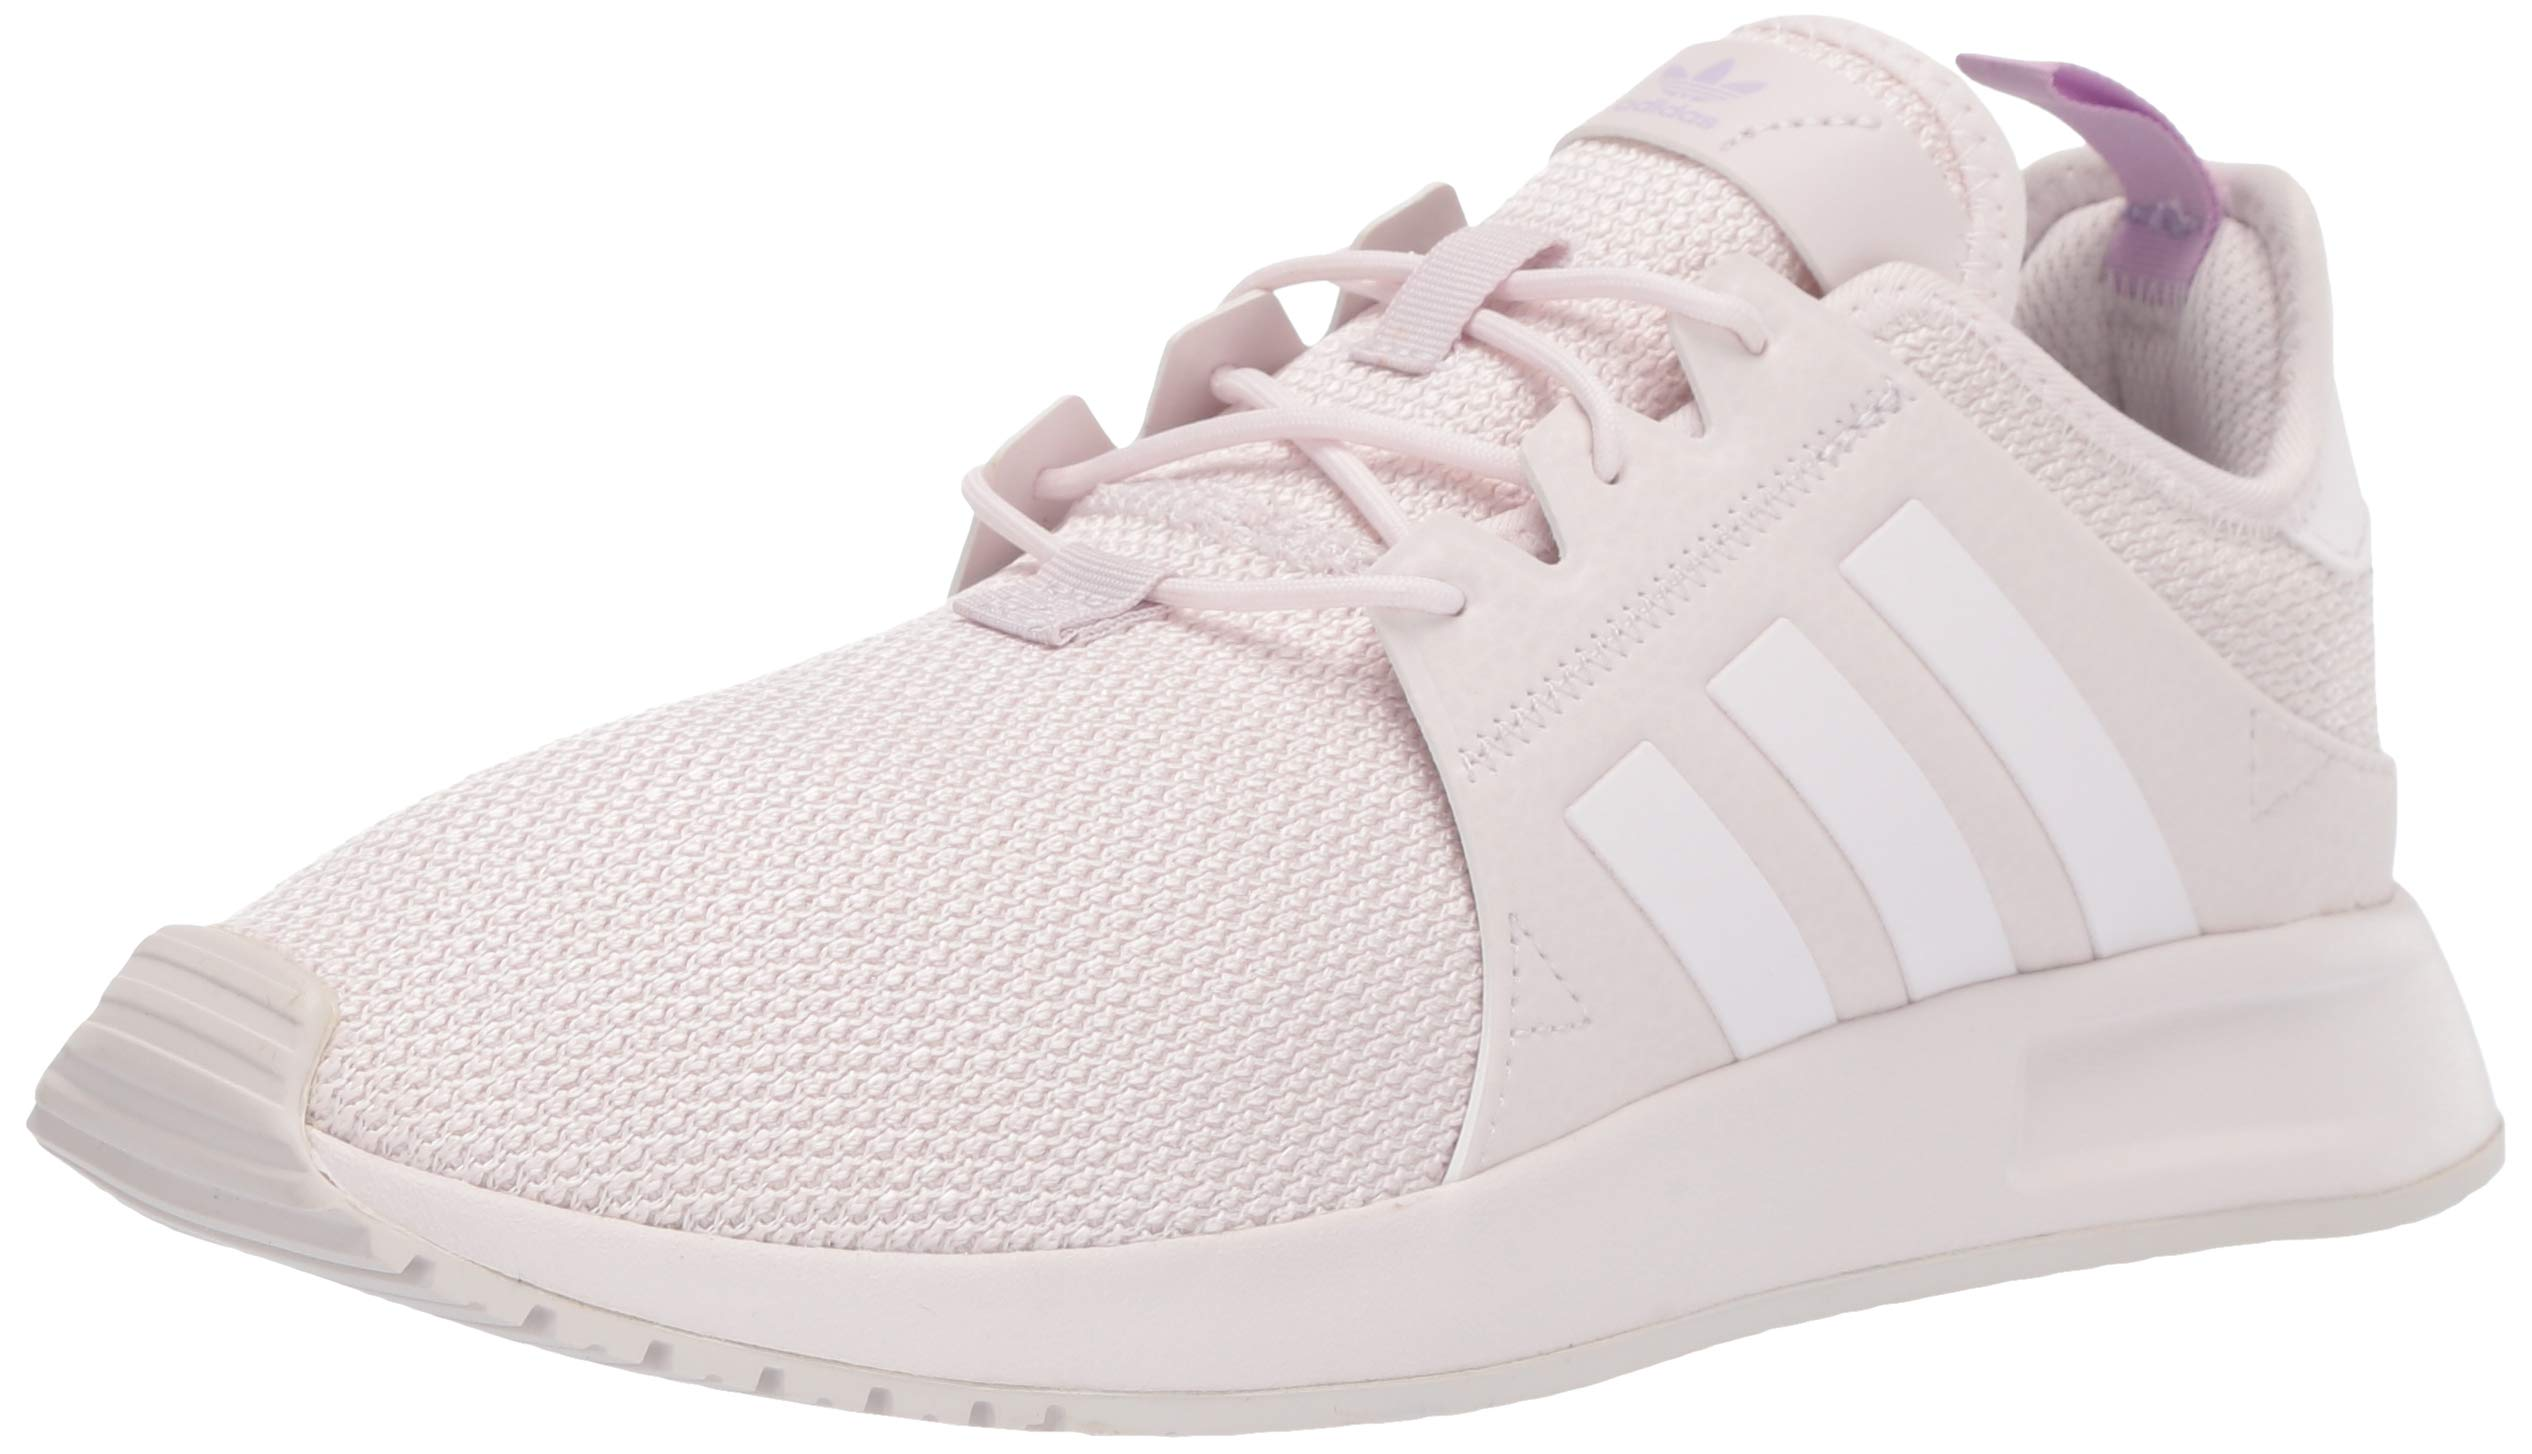 adidas Originals Unisex X_PLR Running Shoe Orchid Tint/Purple Glow/White 5.5 M US Big Kid